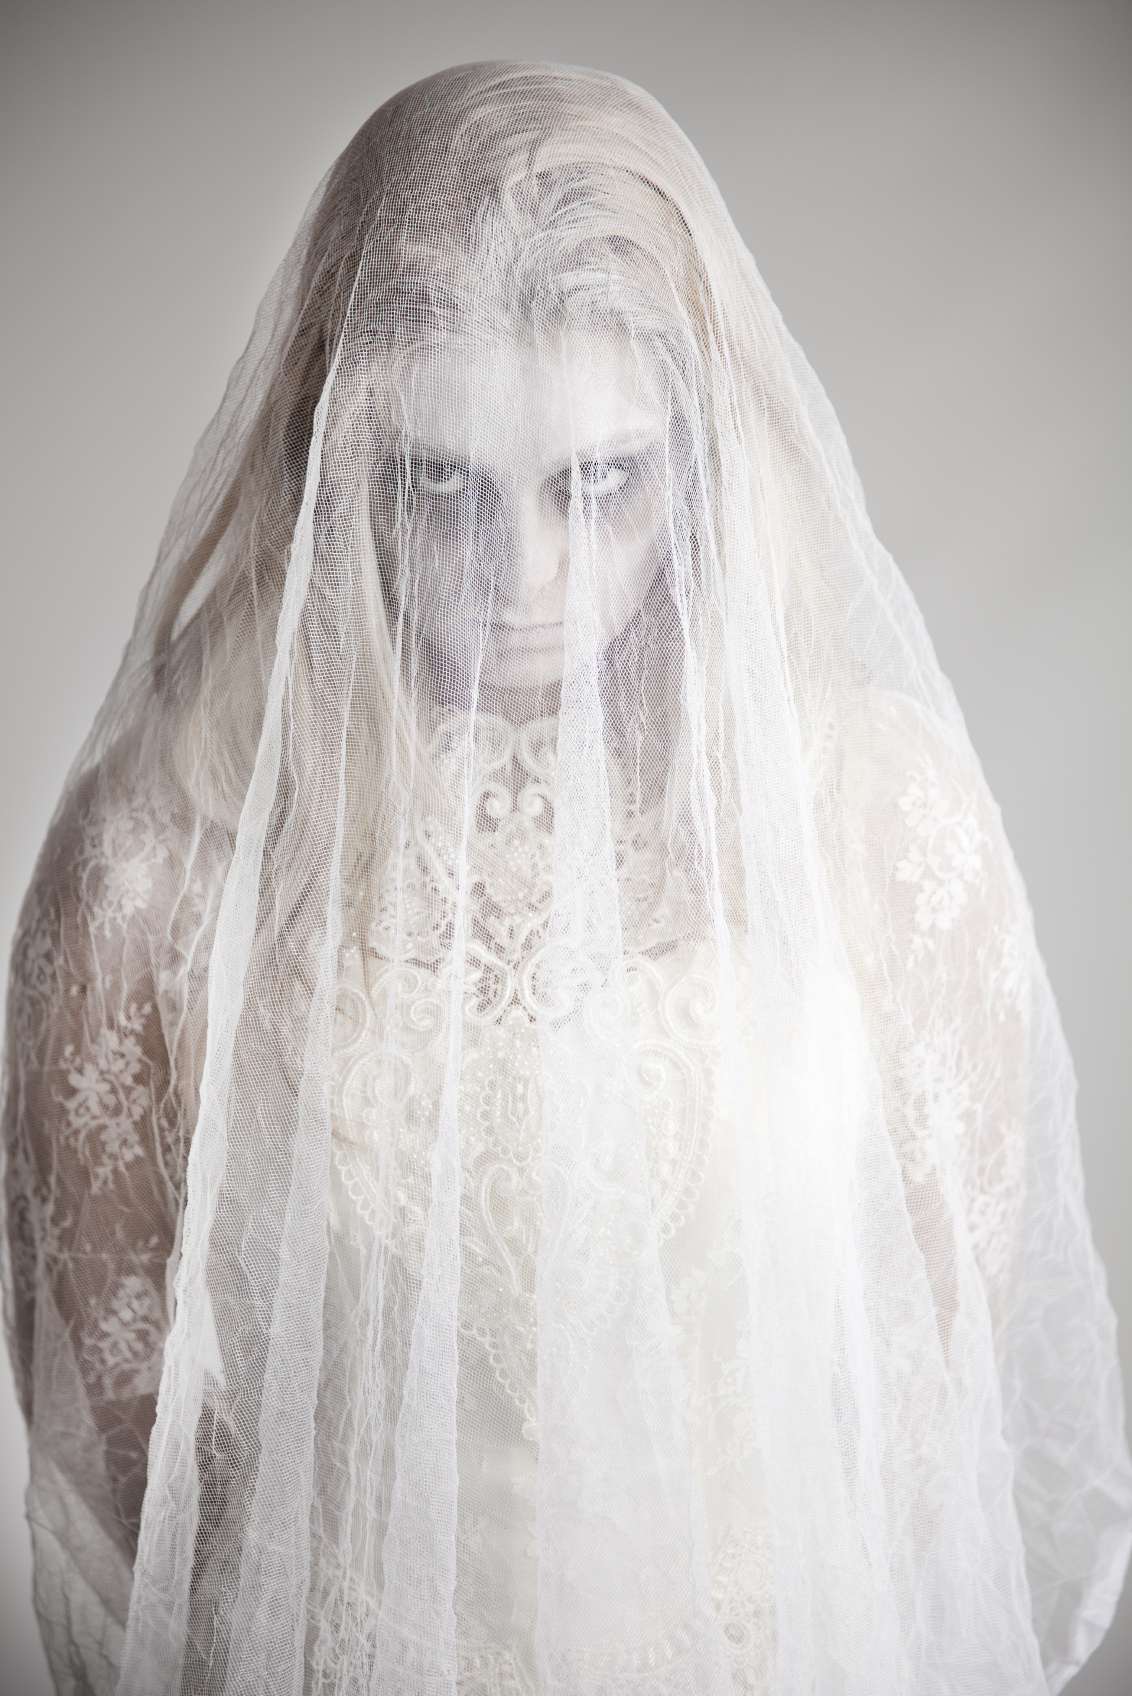 Young Girl with Veil.jpg